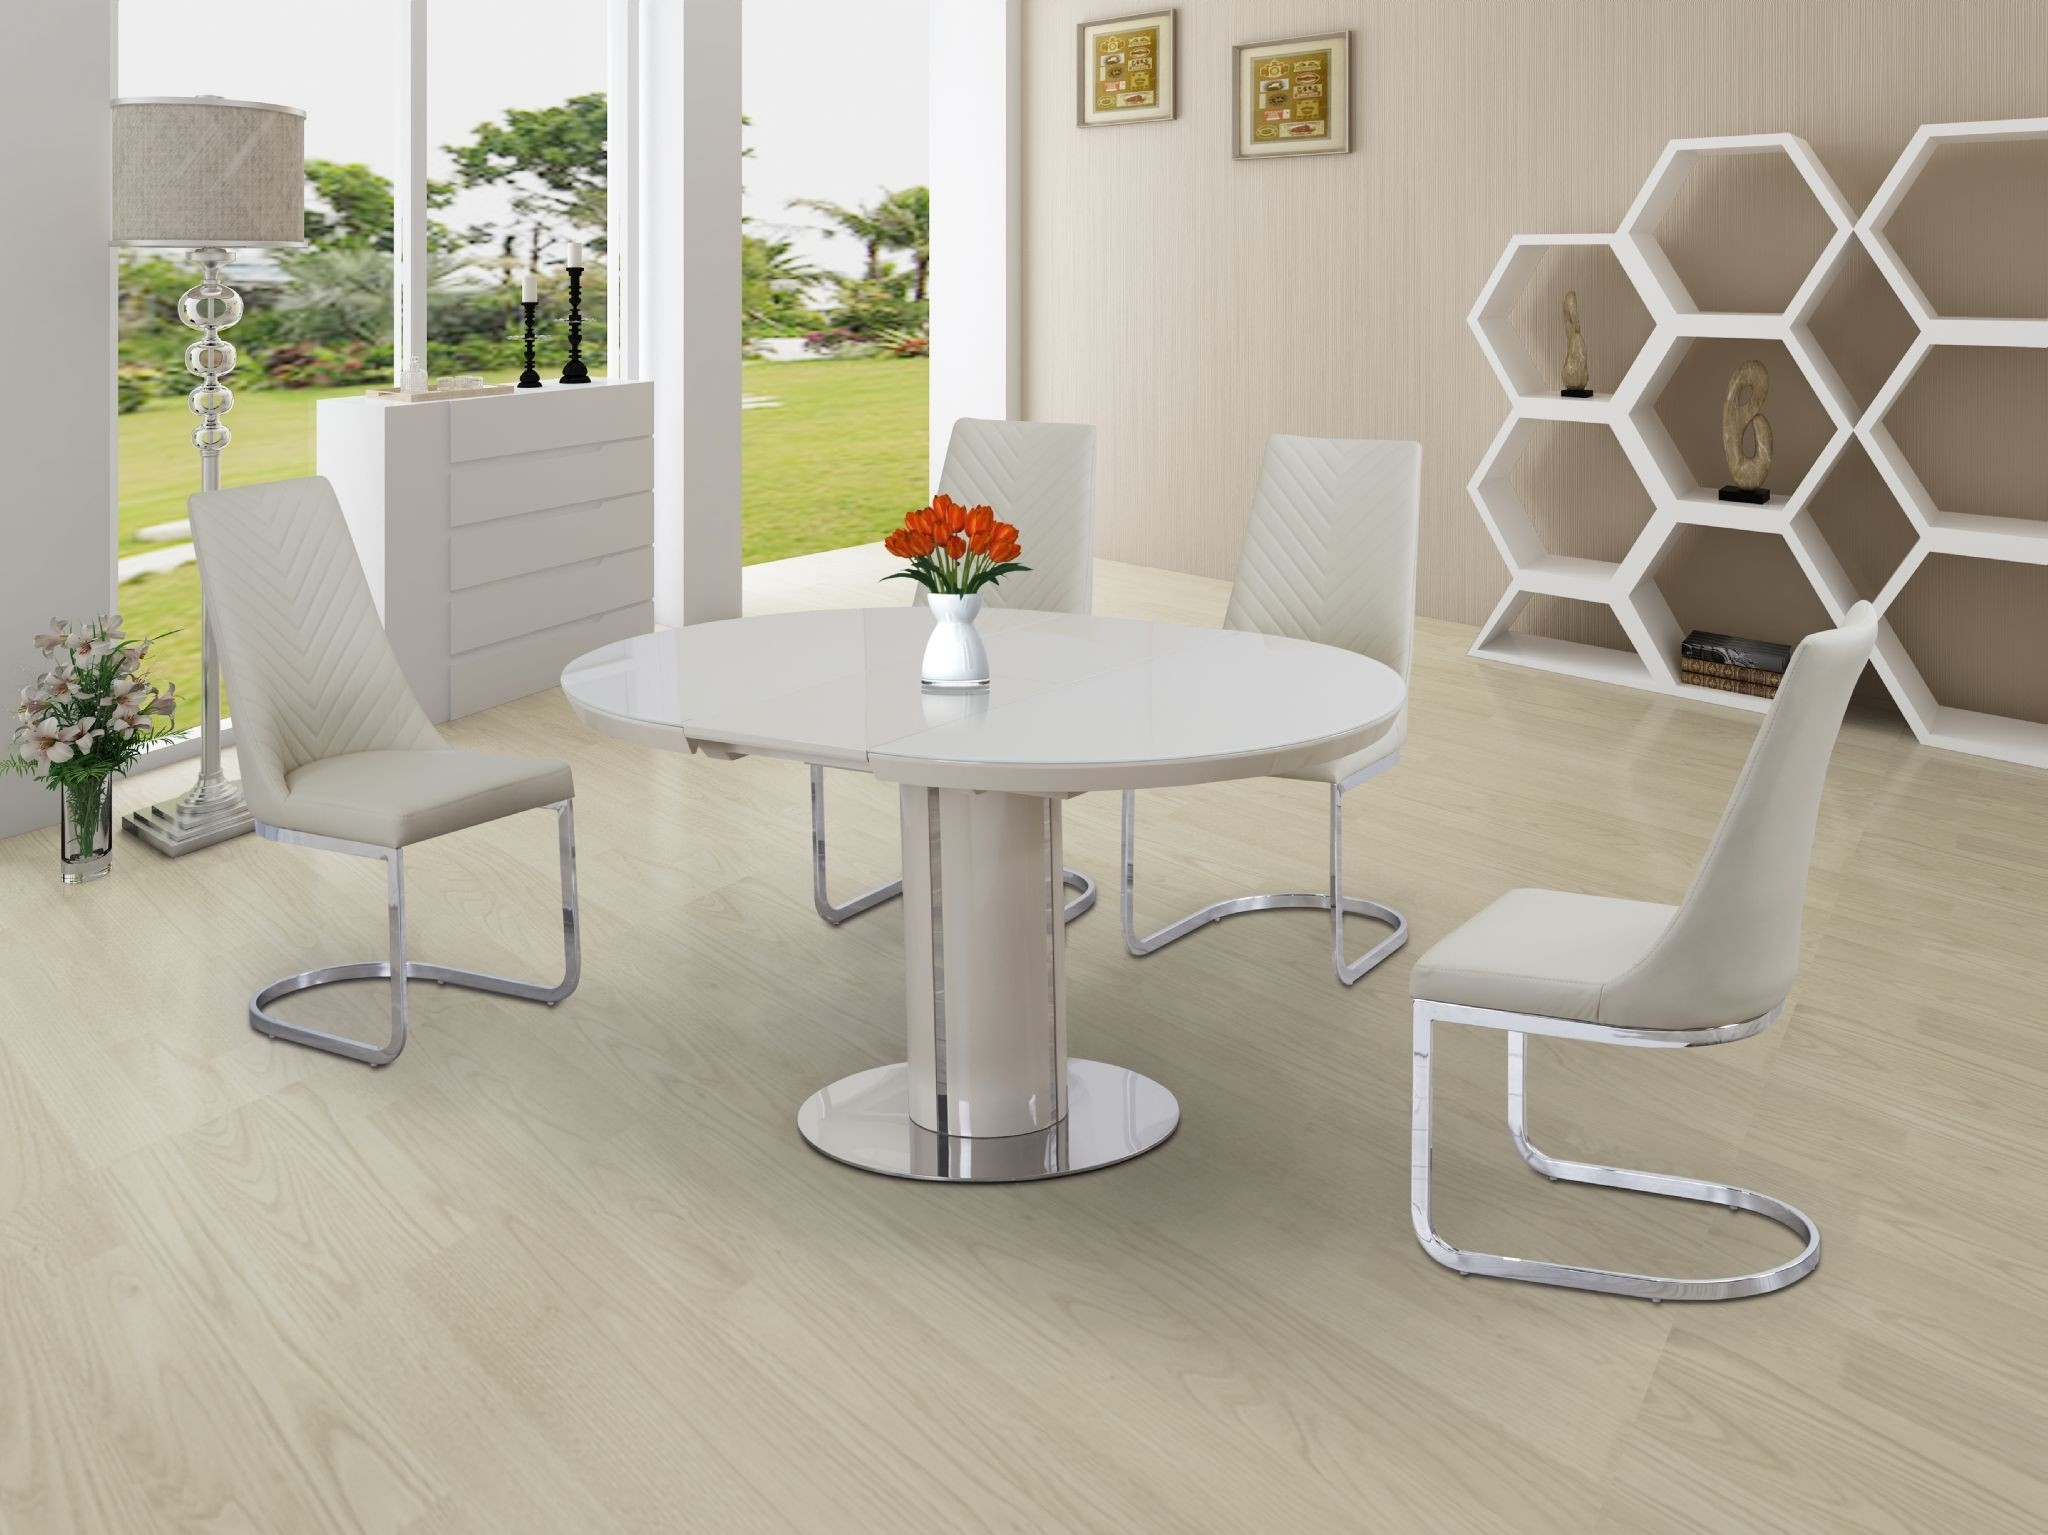 Buy Annular Cream High Gloss Extending Dining Table Pertaining To Best And Newest Hi Gloss Dining Tables (View 2 of 25)